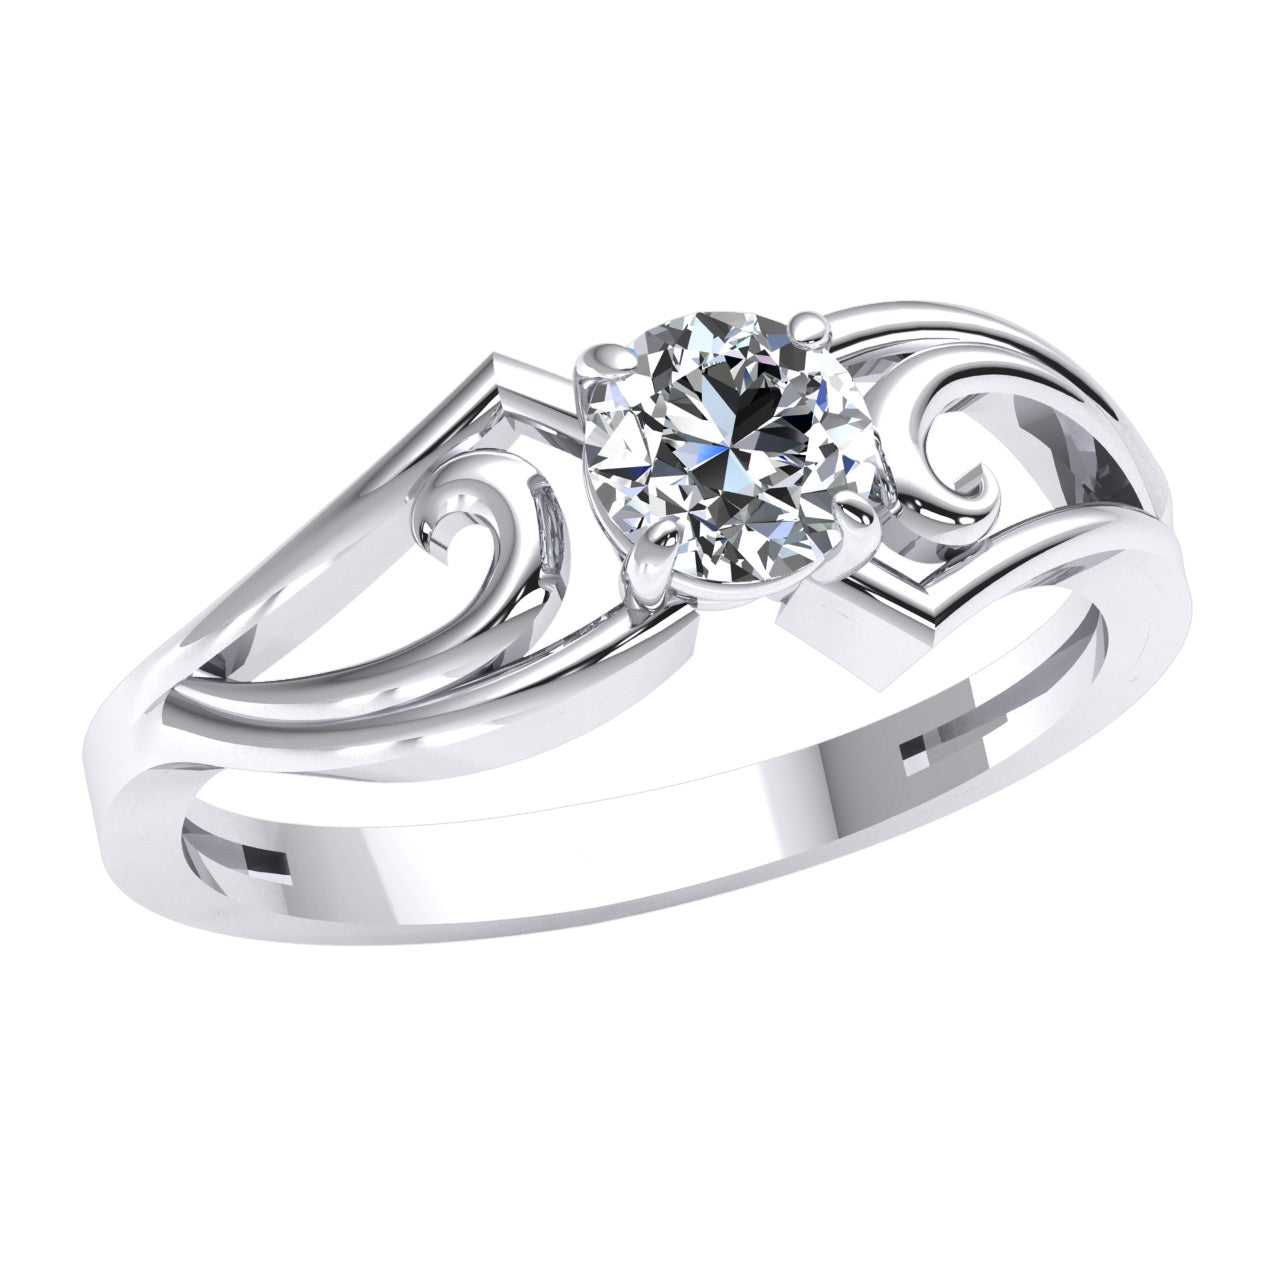 0.40 Ct Round Cut Natural FG VS2 Diamond Offset Swirl Solitaire Engagement Ring in 950 Platinum